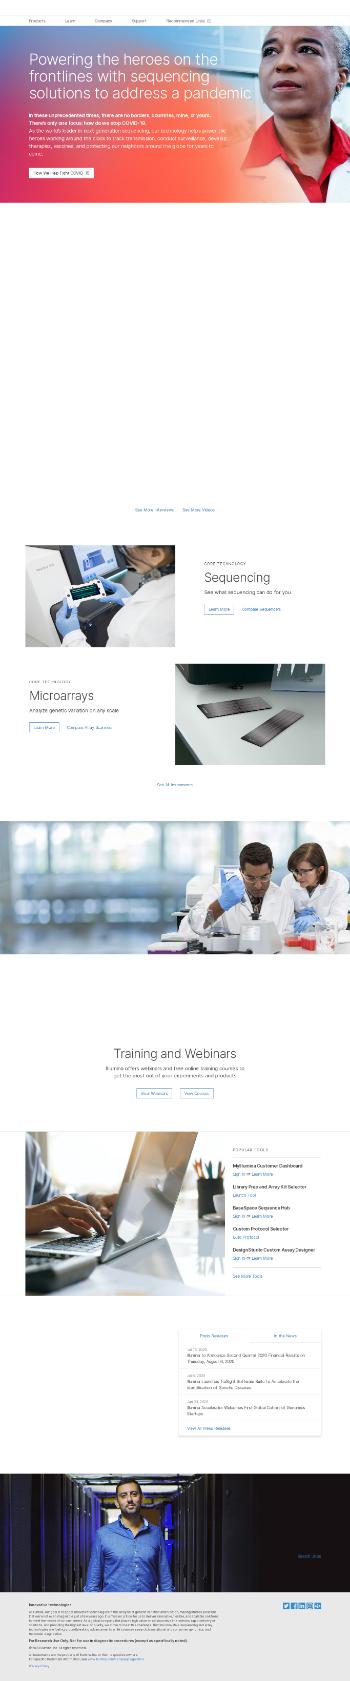 Illumina, Inc. Website Screenshot